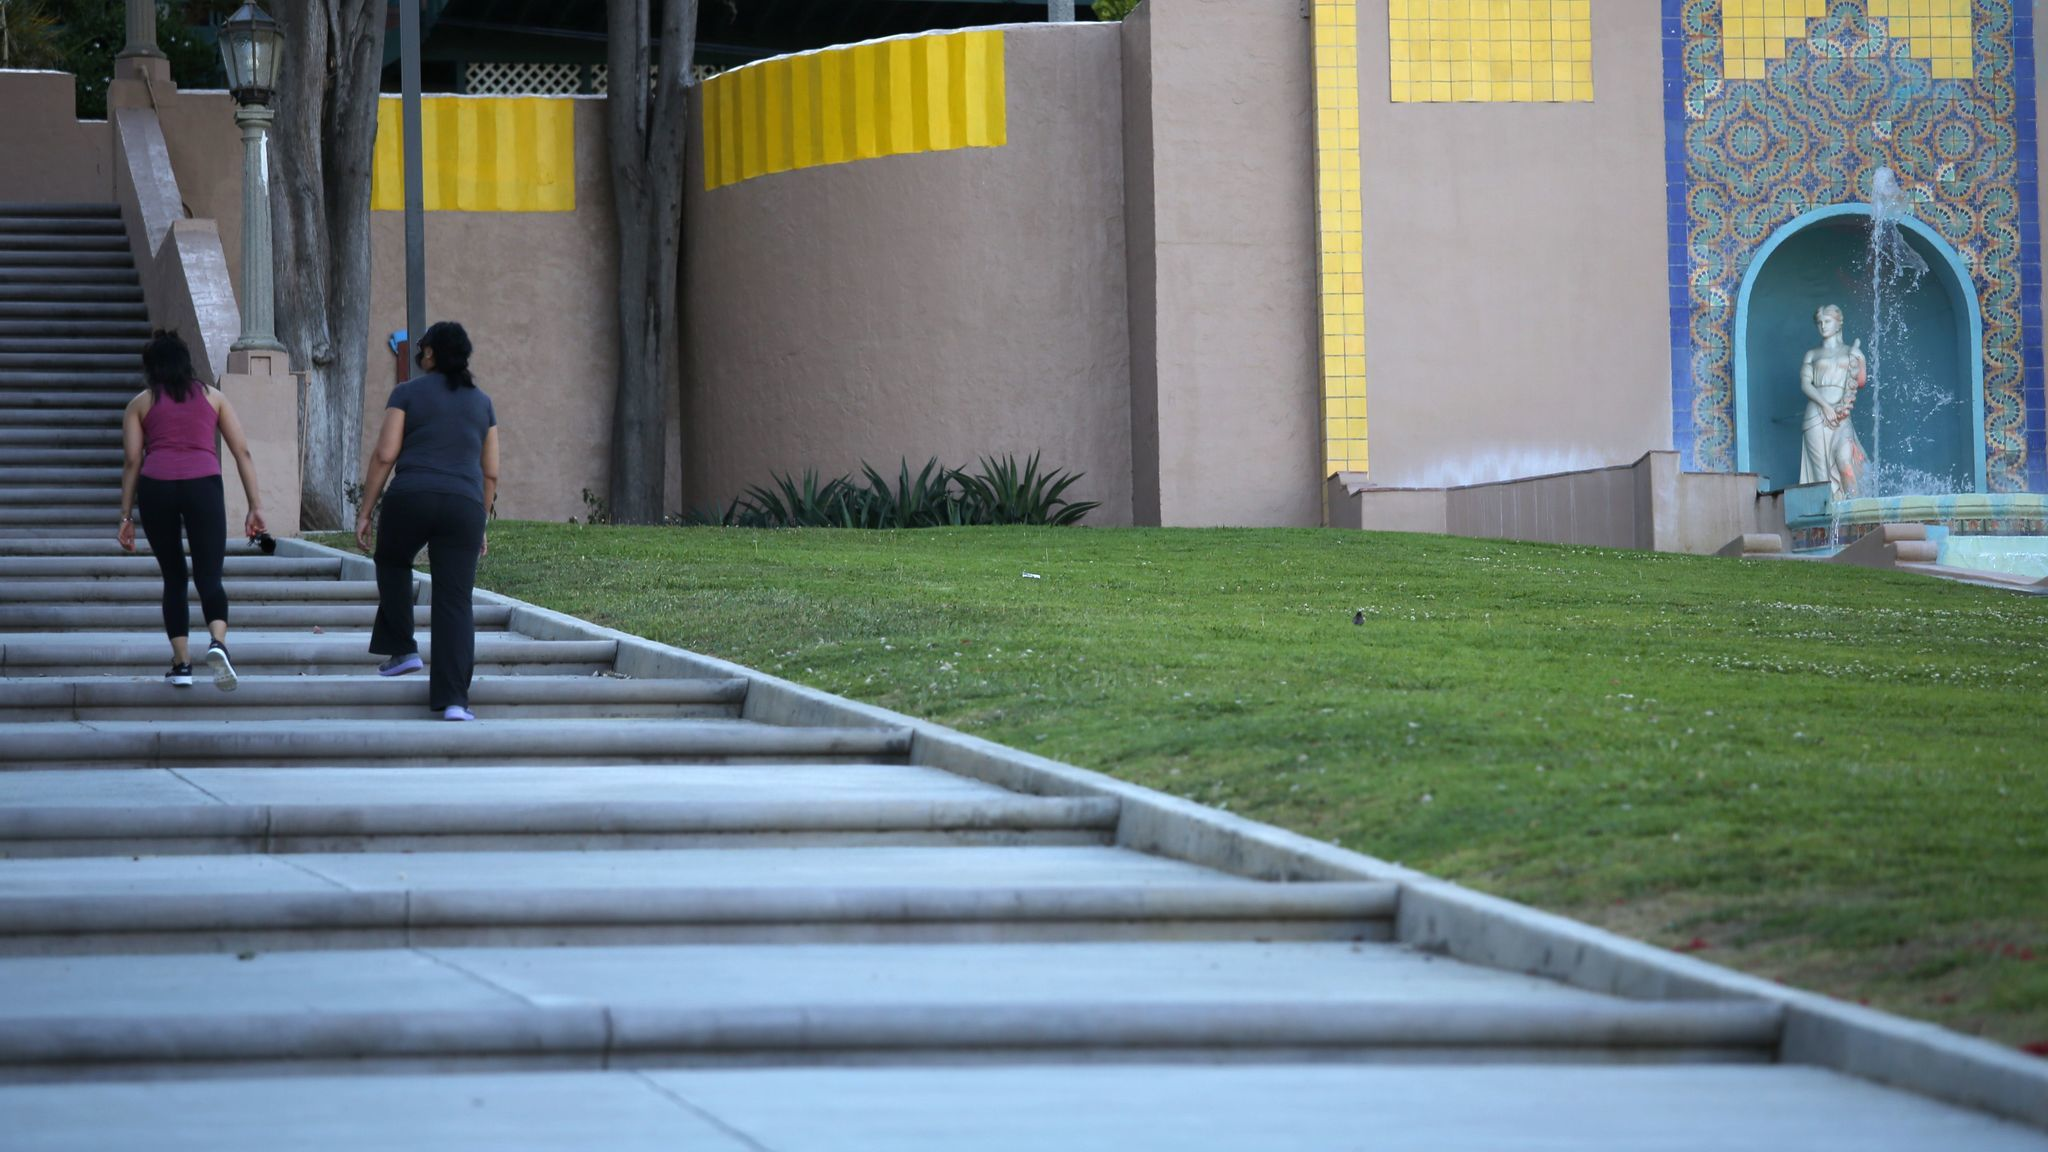 Walkers stroll by the Athena statue that tops the Heritage Falls fountain in Monterey Park.